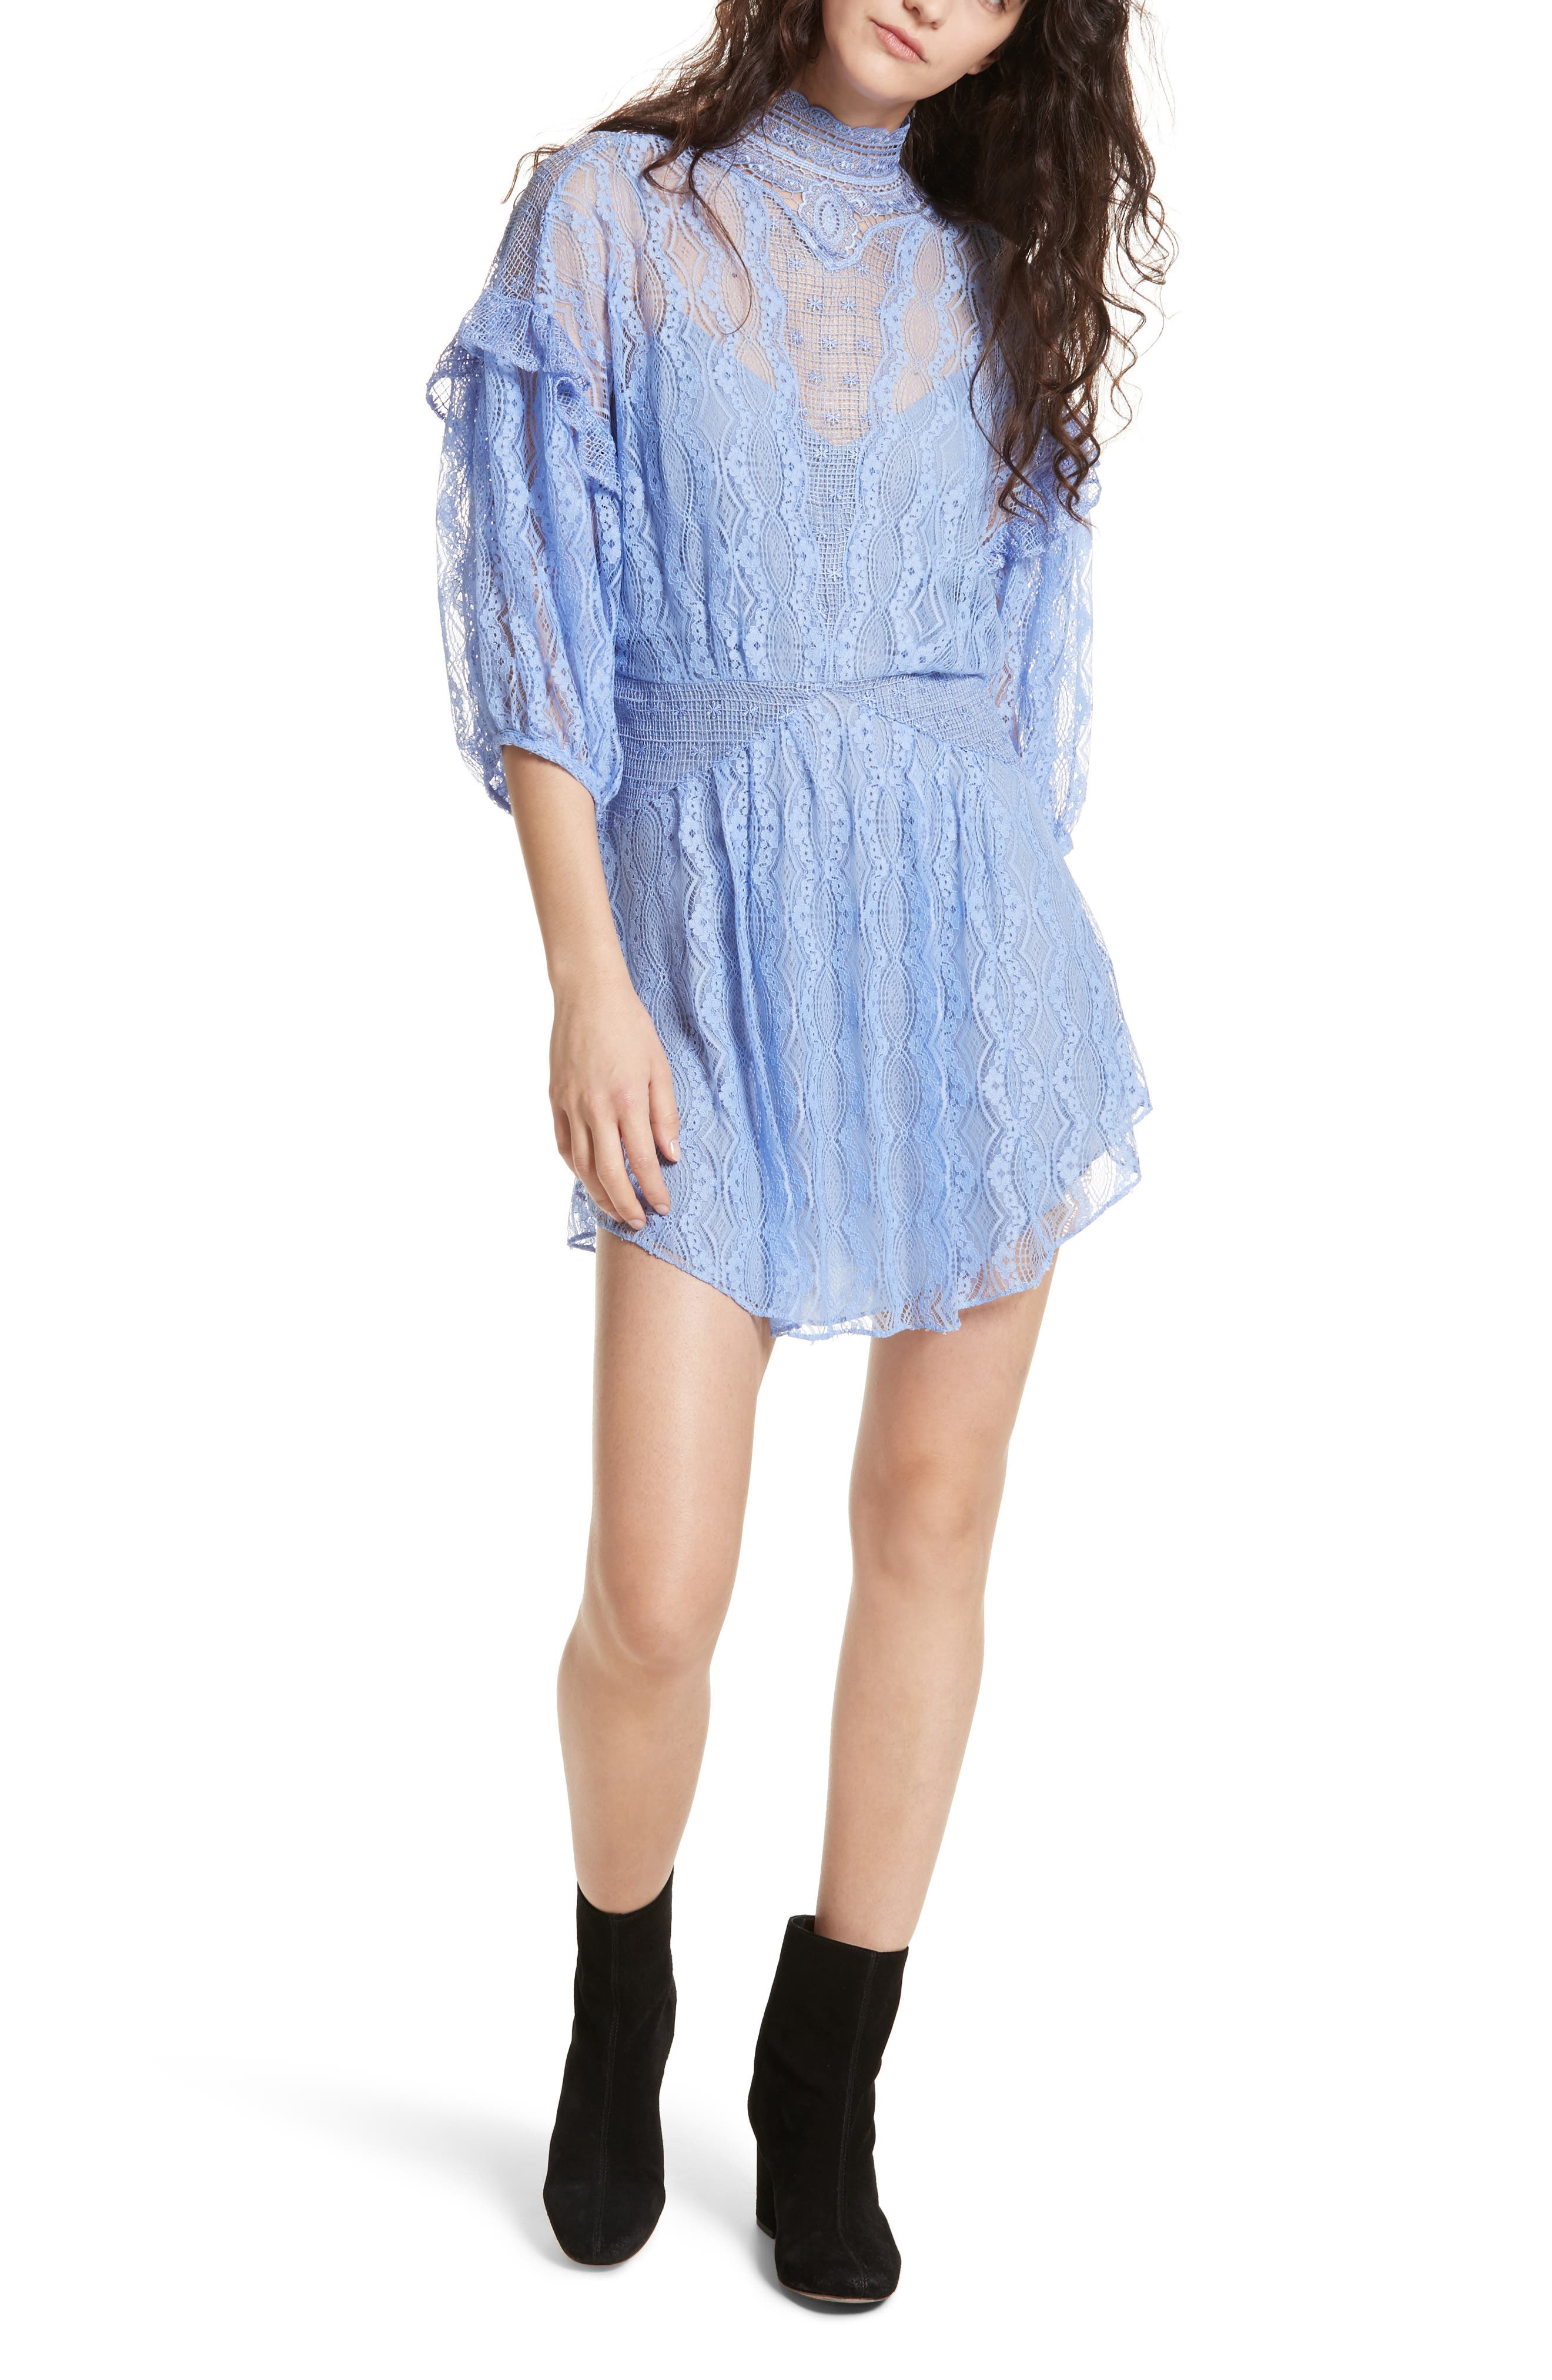 Bittersweet Dolman Sleeve Minidress,                             Main thumbnail 1, color,                             400